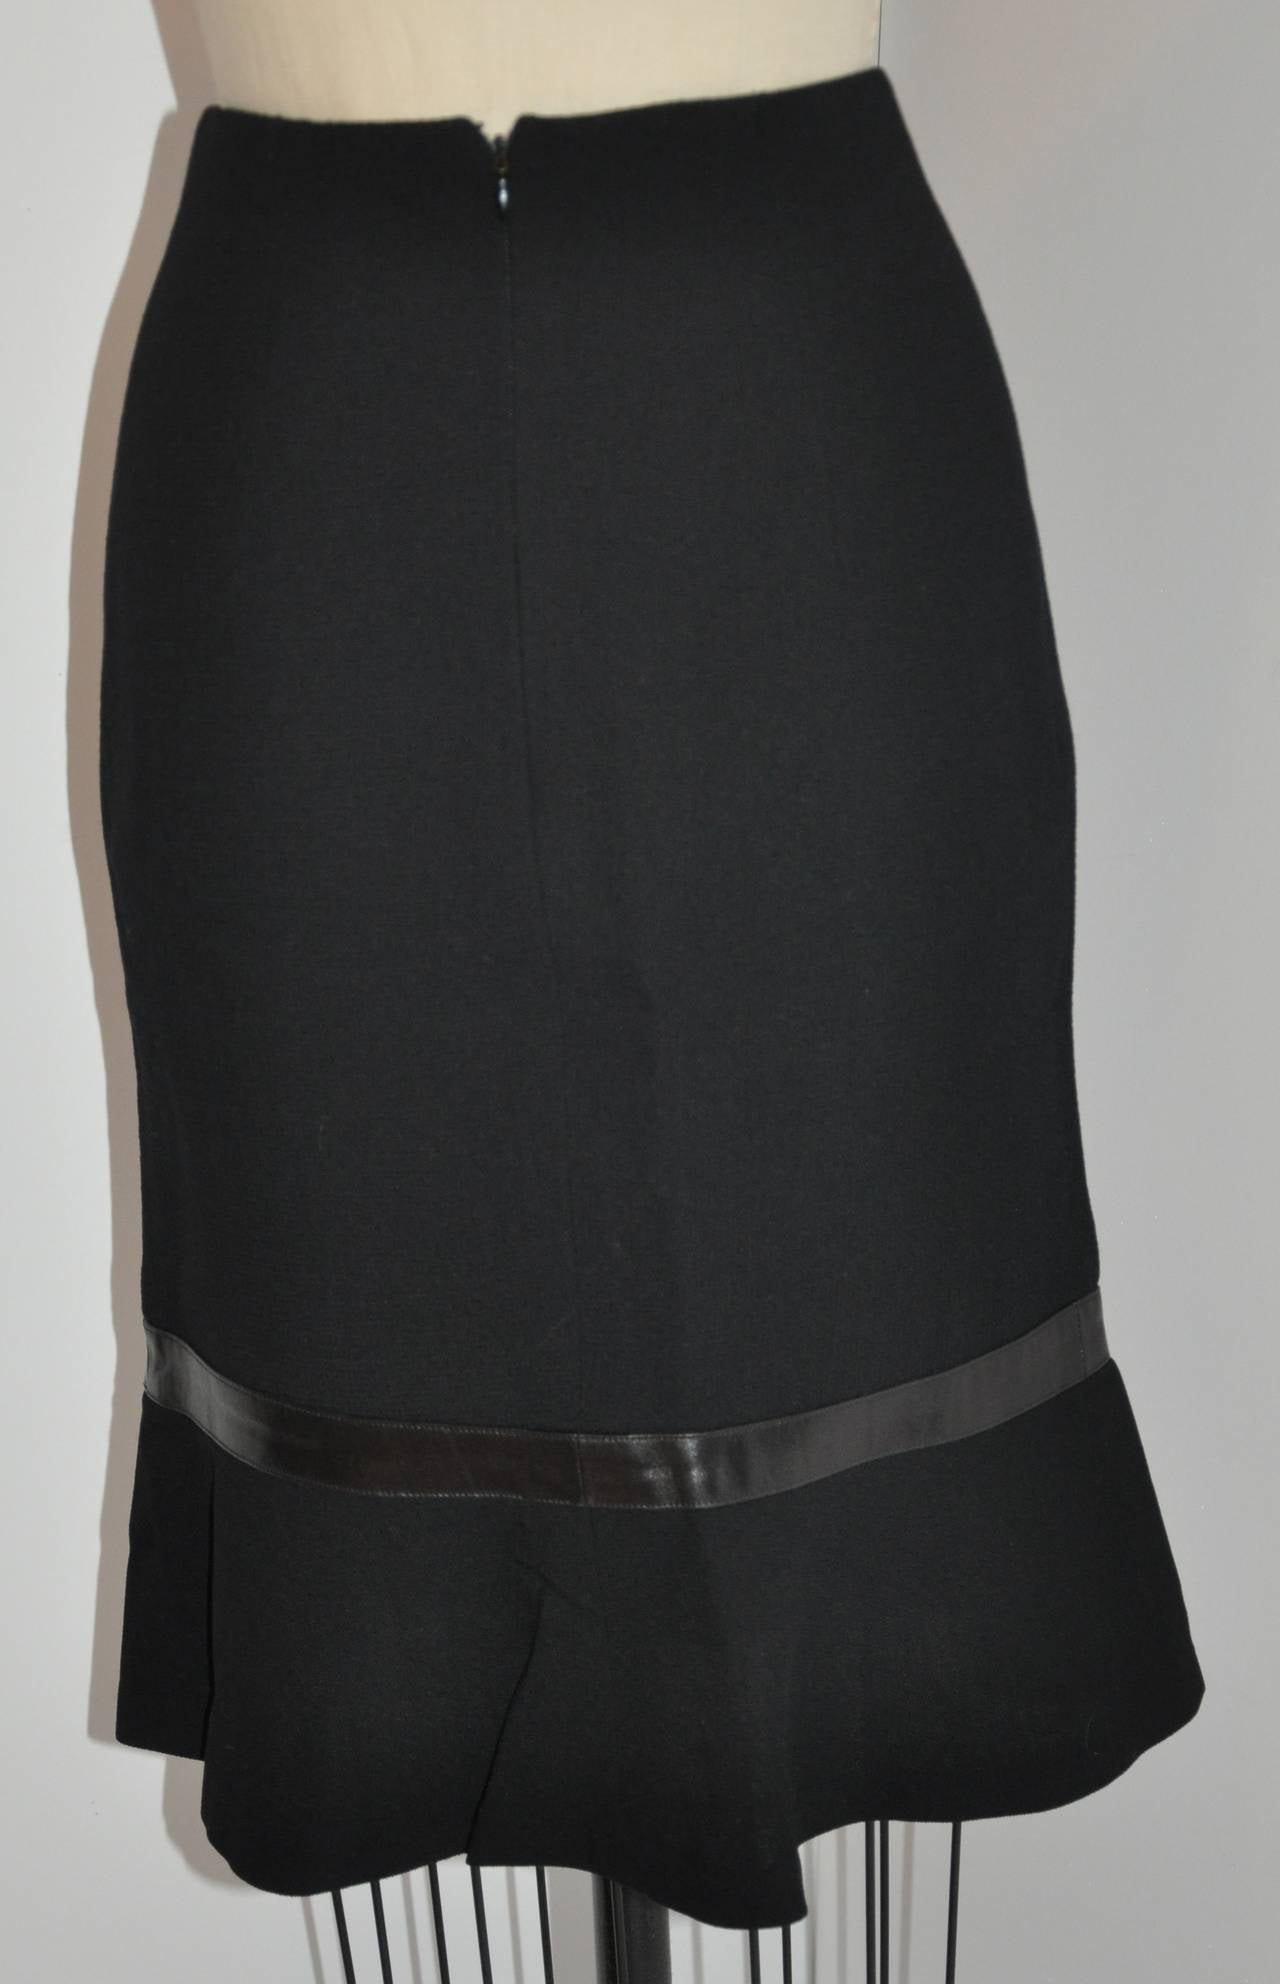 Luca Luca fully lined black wool crepe skirt accented with soft sheepskin leather toward the hem makes for a twist for a classic and elegant skirt.     Skirt is fully lined with black silk along with a center-back invisible zipper which measures 8